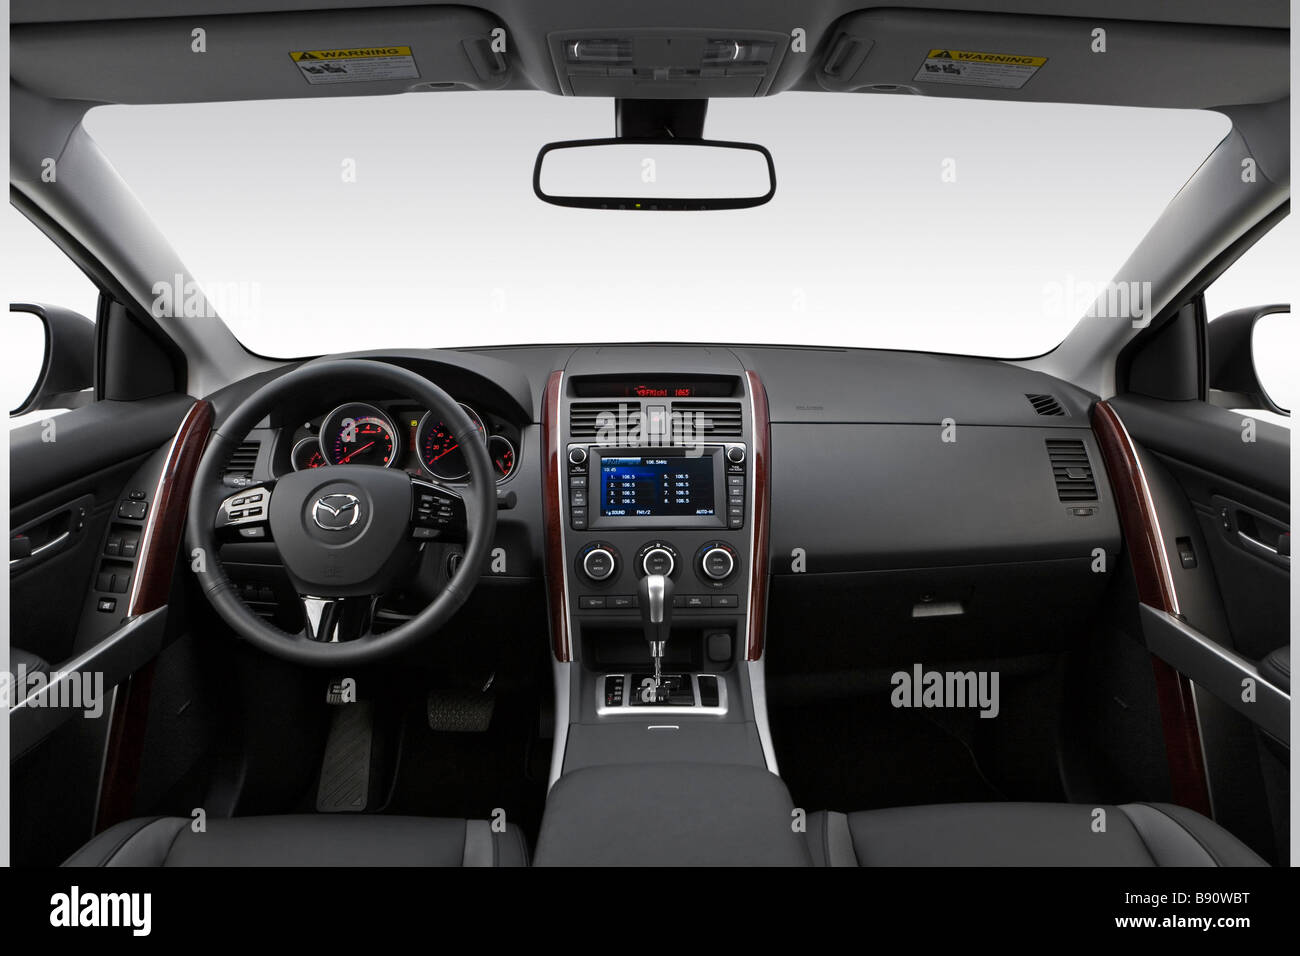 https://c8.alamy.com/comp/B90WBT/2009-mazda-cx-9-grand-touring-in-silver-front-angle-view-B90WBT.jpg